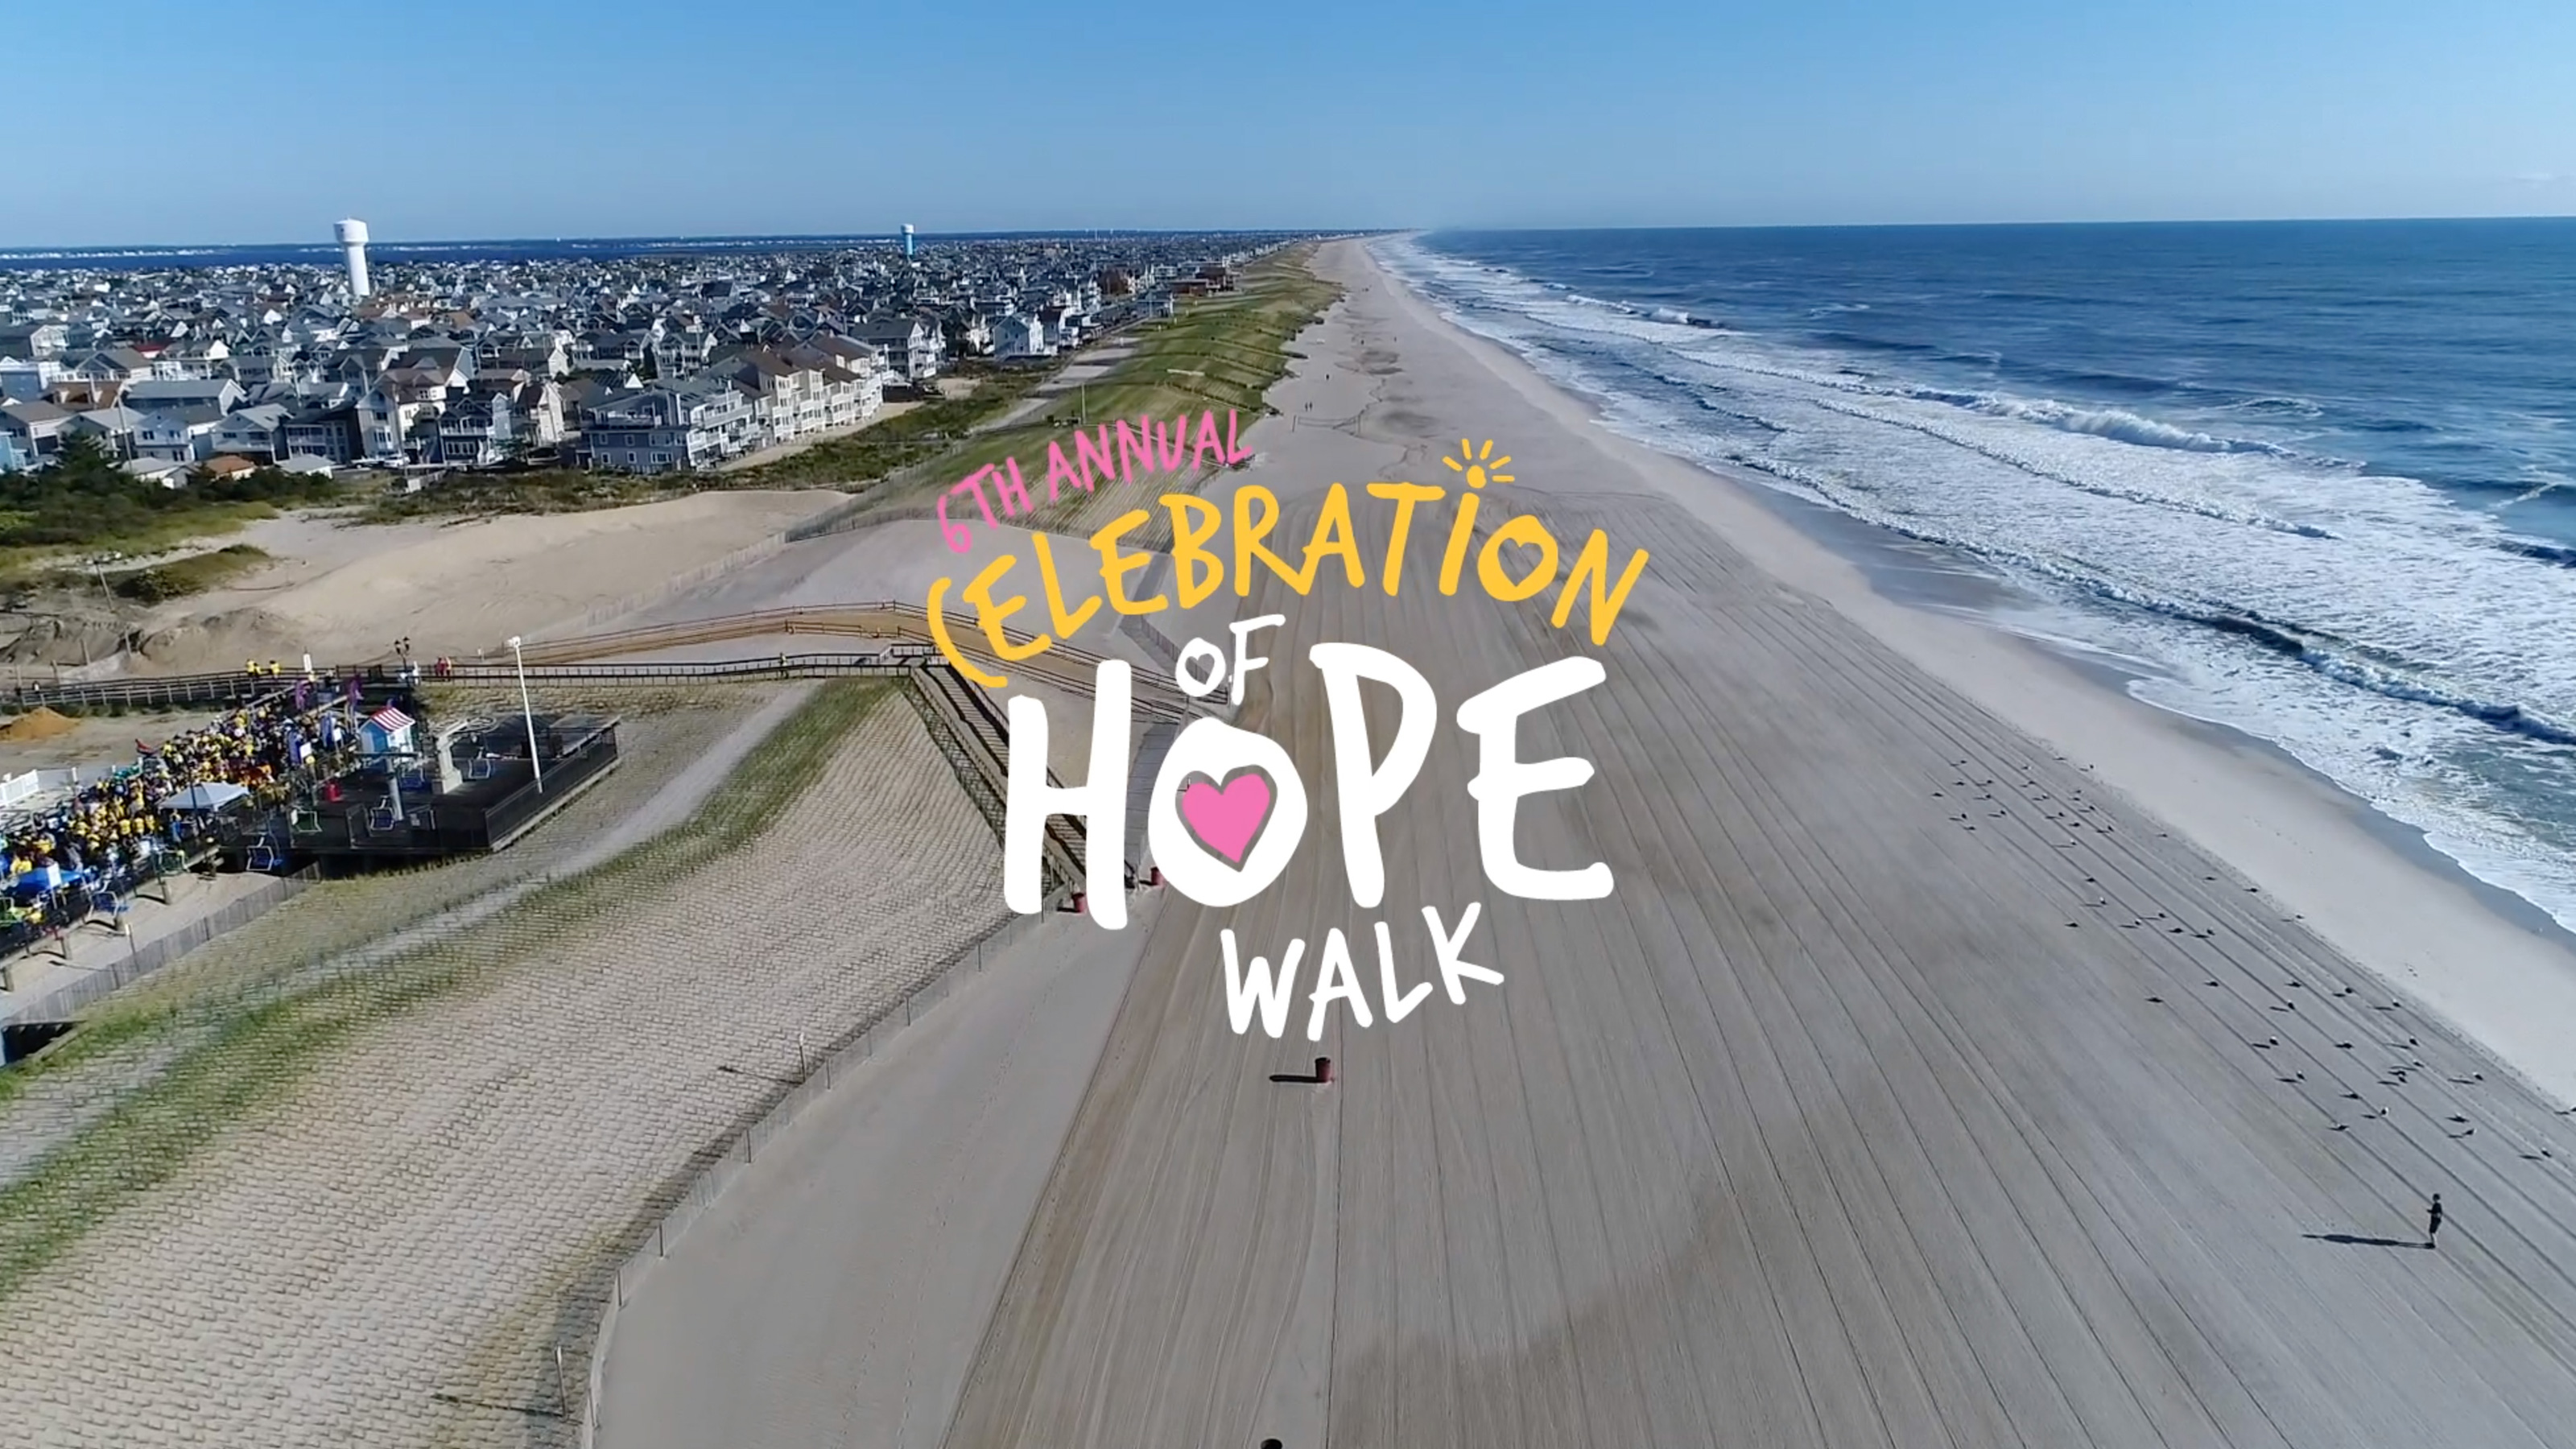 Hope Sheds Light Walk